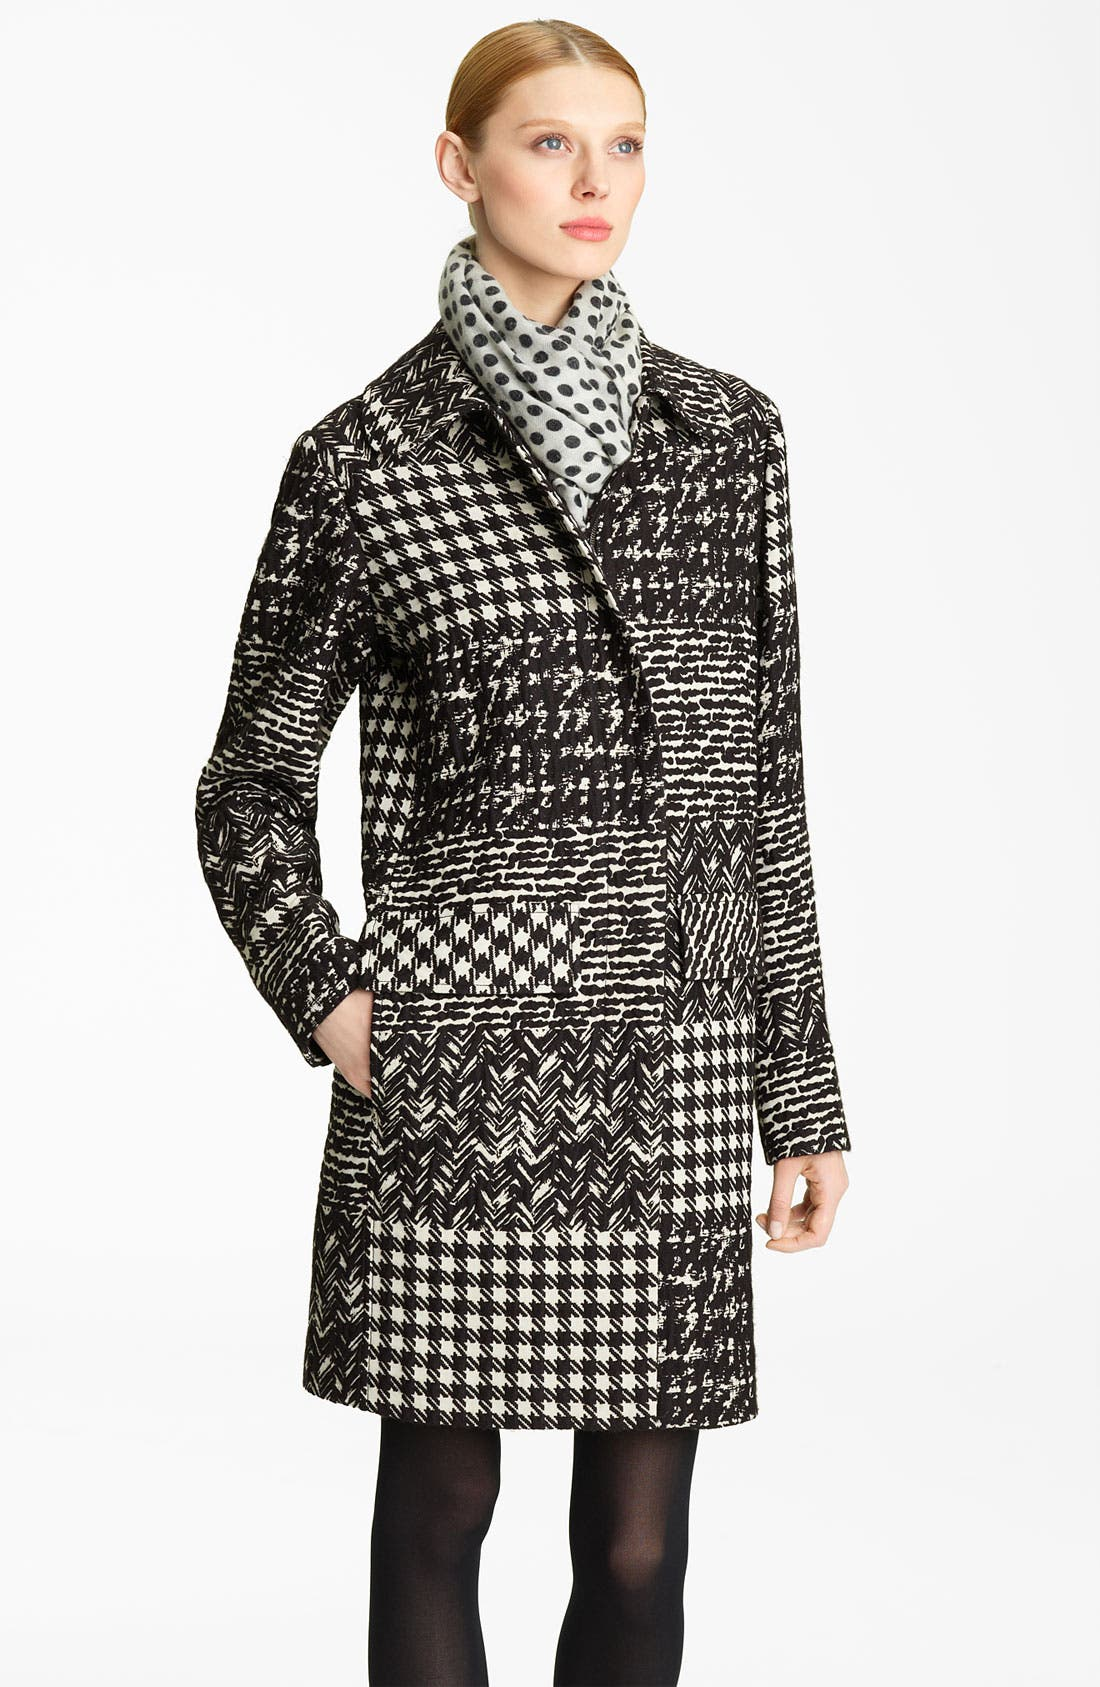 Alternate Image 1 Selected - Oscar de la Renta Tweed & Matelassé Patchwork Coat